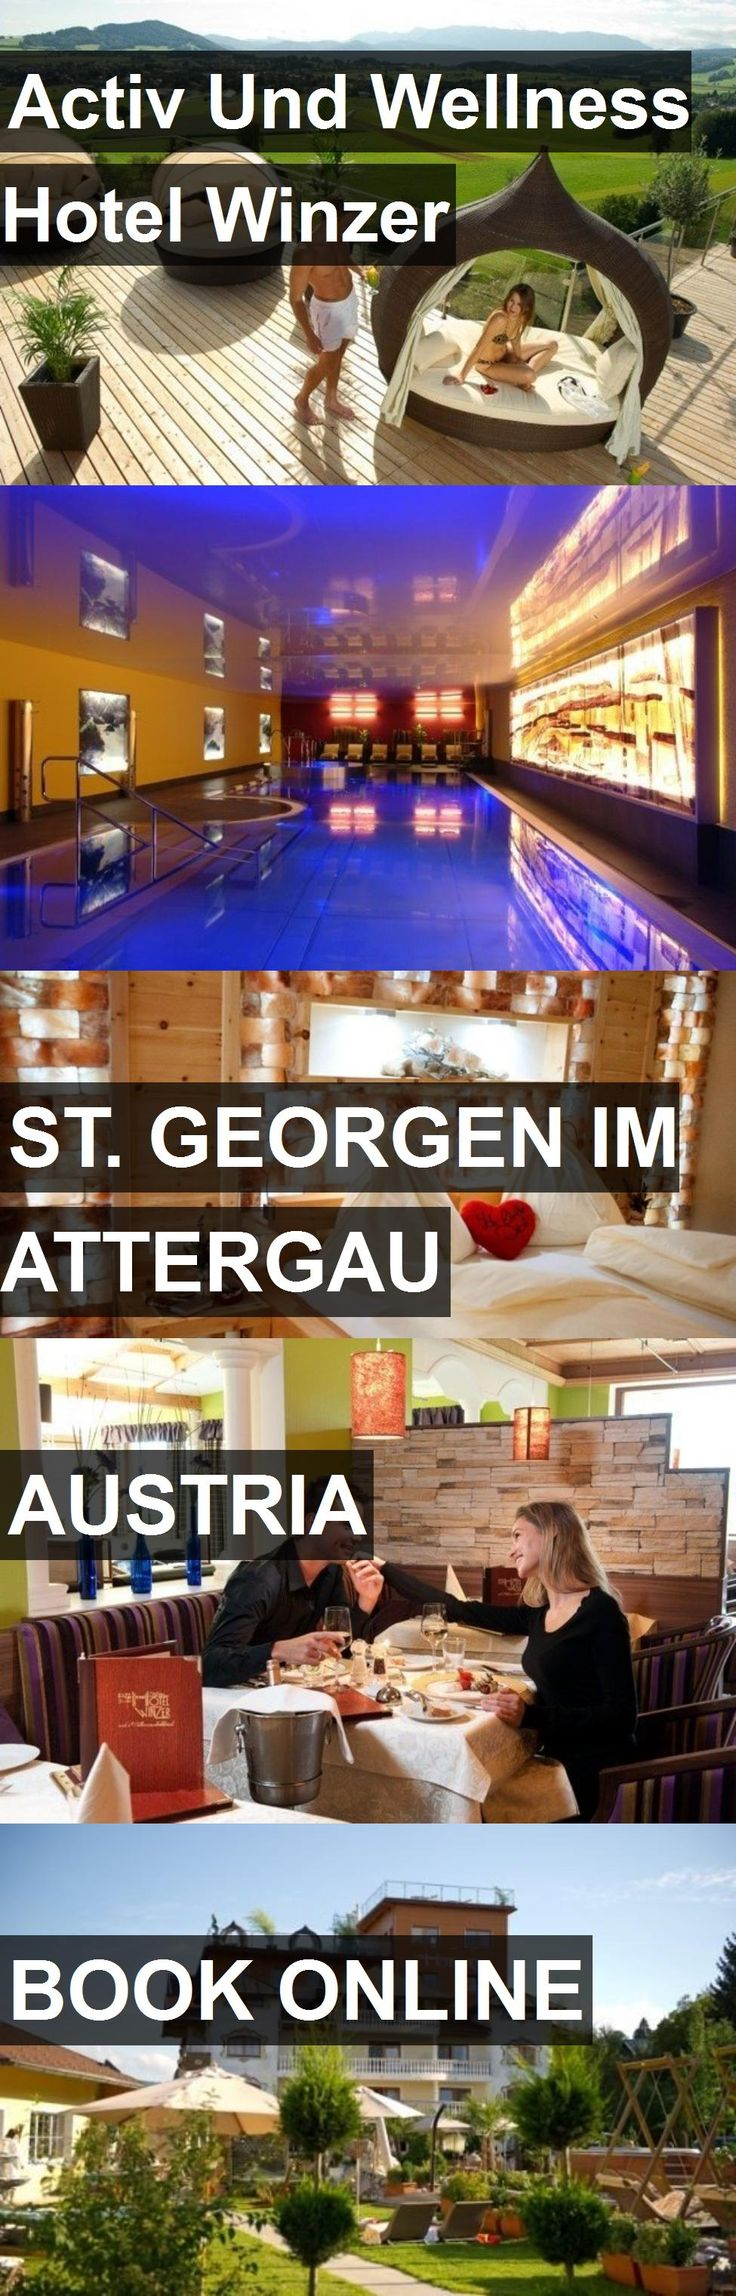 Activ Und Wellness Hotel Winzer in St. Georgen im Attergau, Austria. For more information, photos, reviews and best prices please follow the link. #Austria #St.GeorgenimAttergau #travel #vacation #hotel